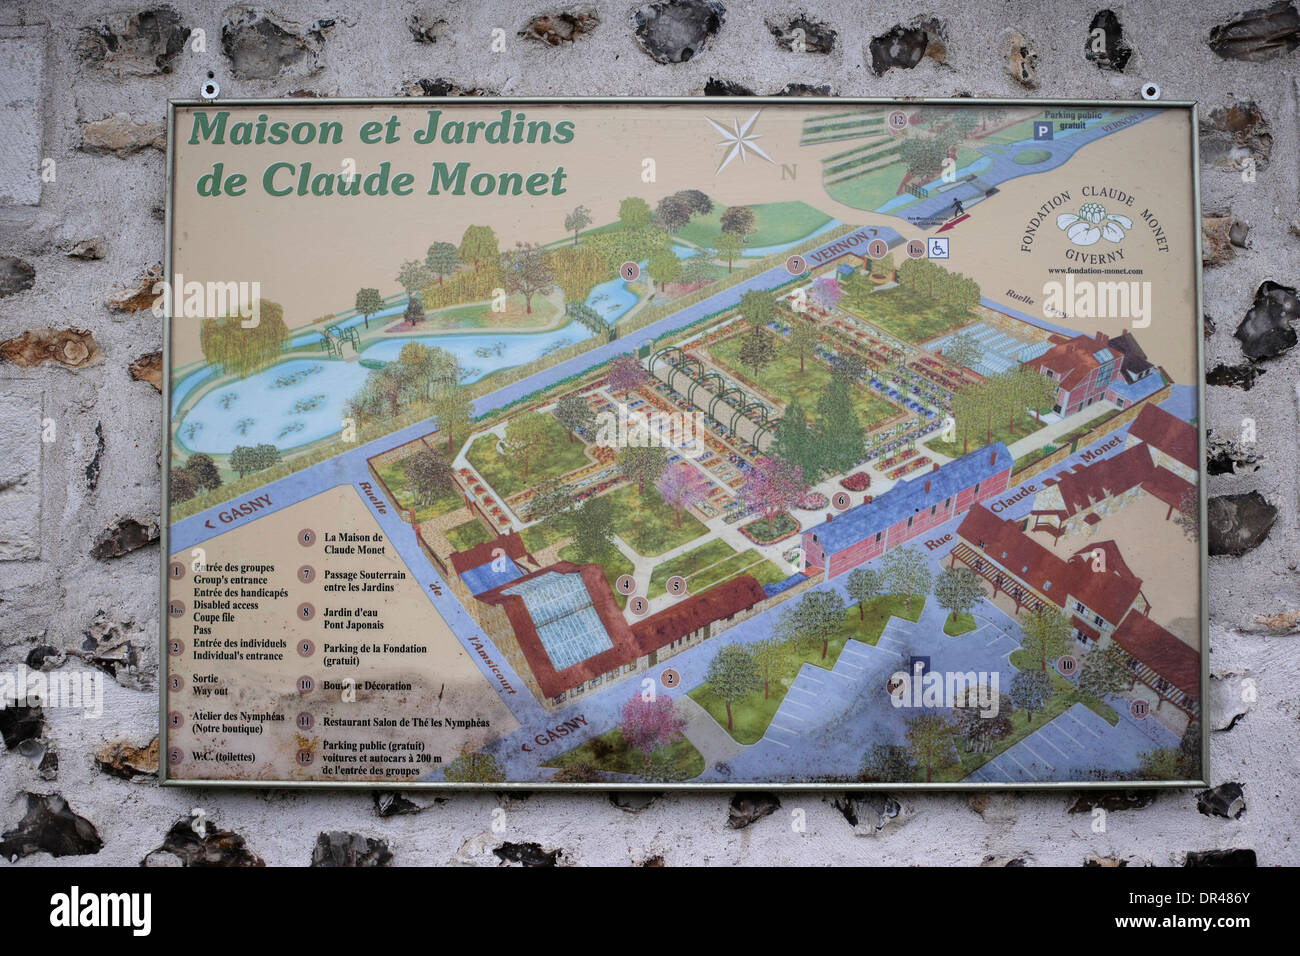 Map Of France Giverny.A Map Plan Of Monet S House And Garden Giverny Normandy France